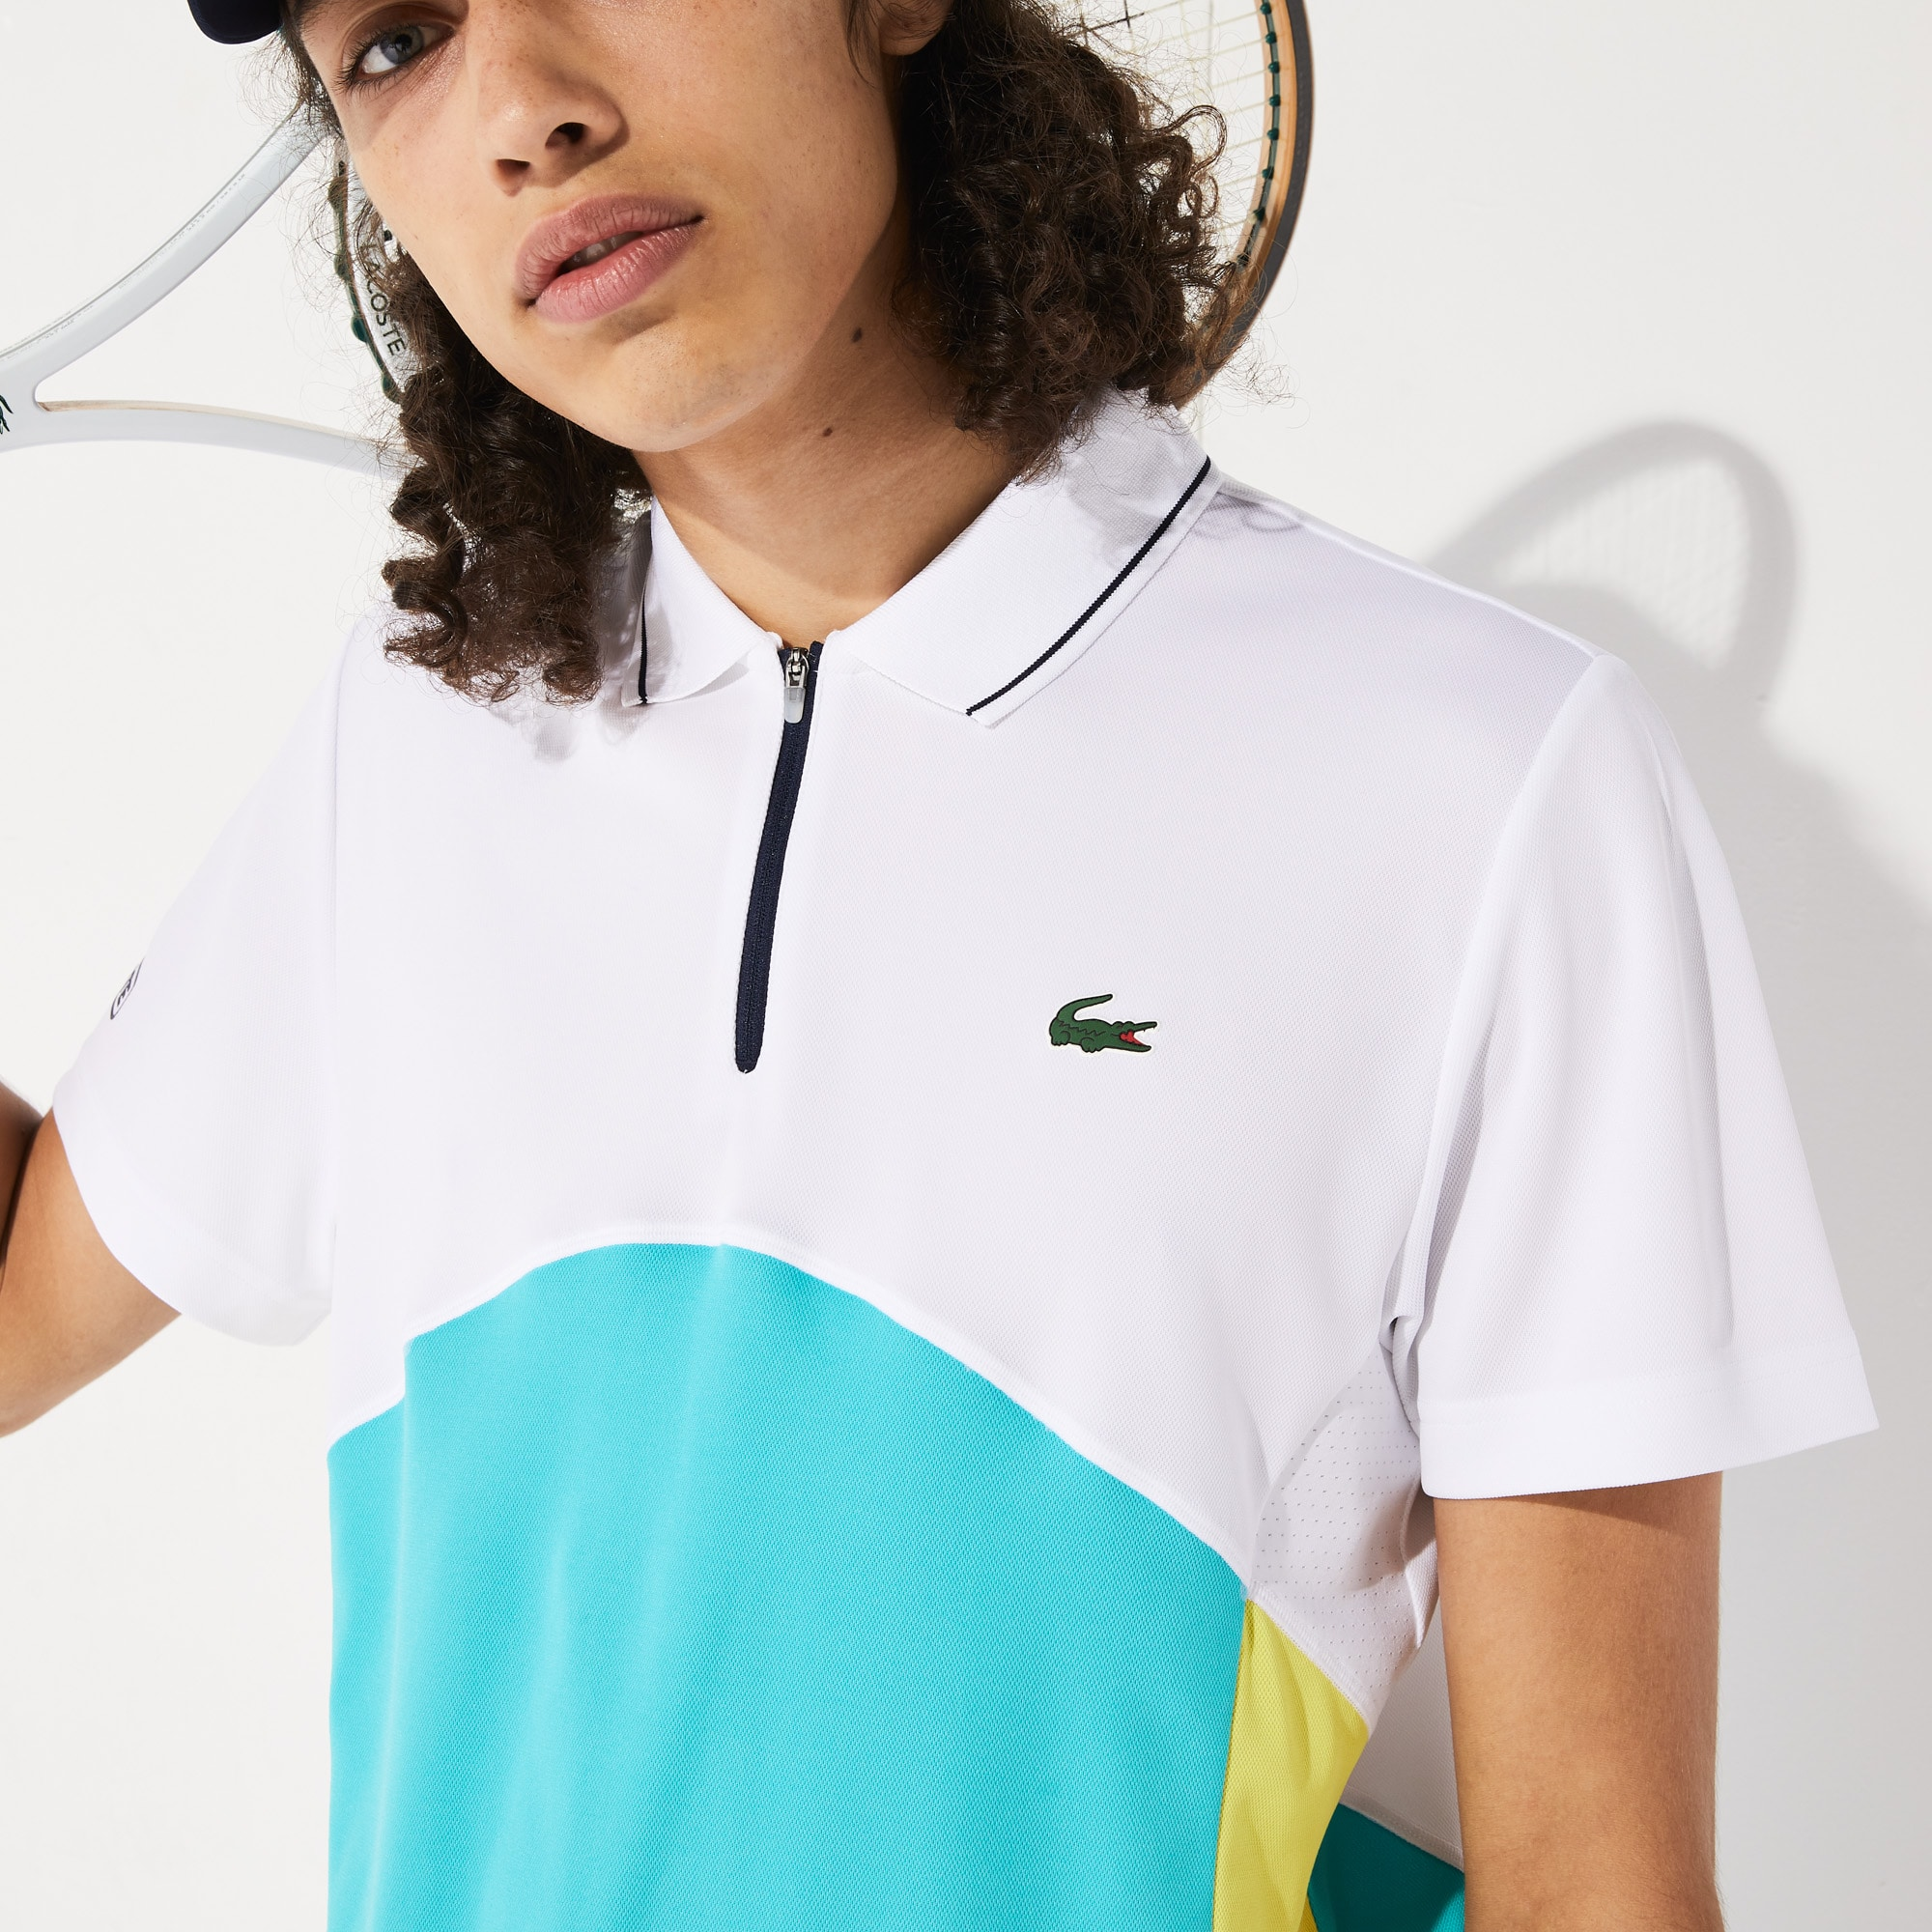 라코스테 Lacoste Mens SPORT Ultra-Dry Pique Zip Tennis Polo Shirt,White / Turquoise / Yellow / Navy Blue - YGZ (Sele